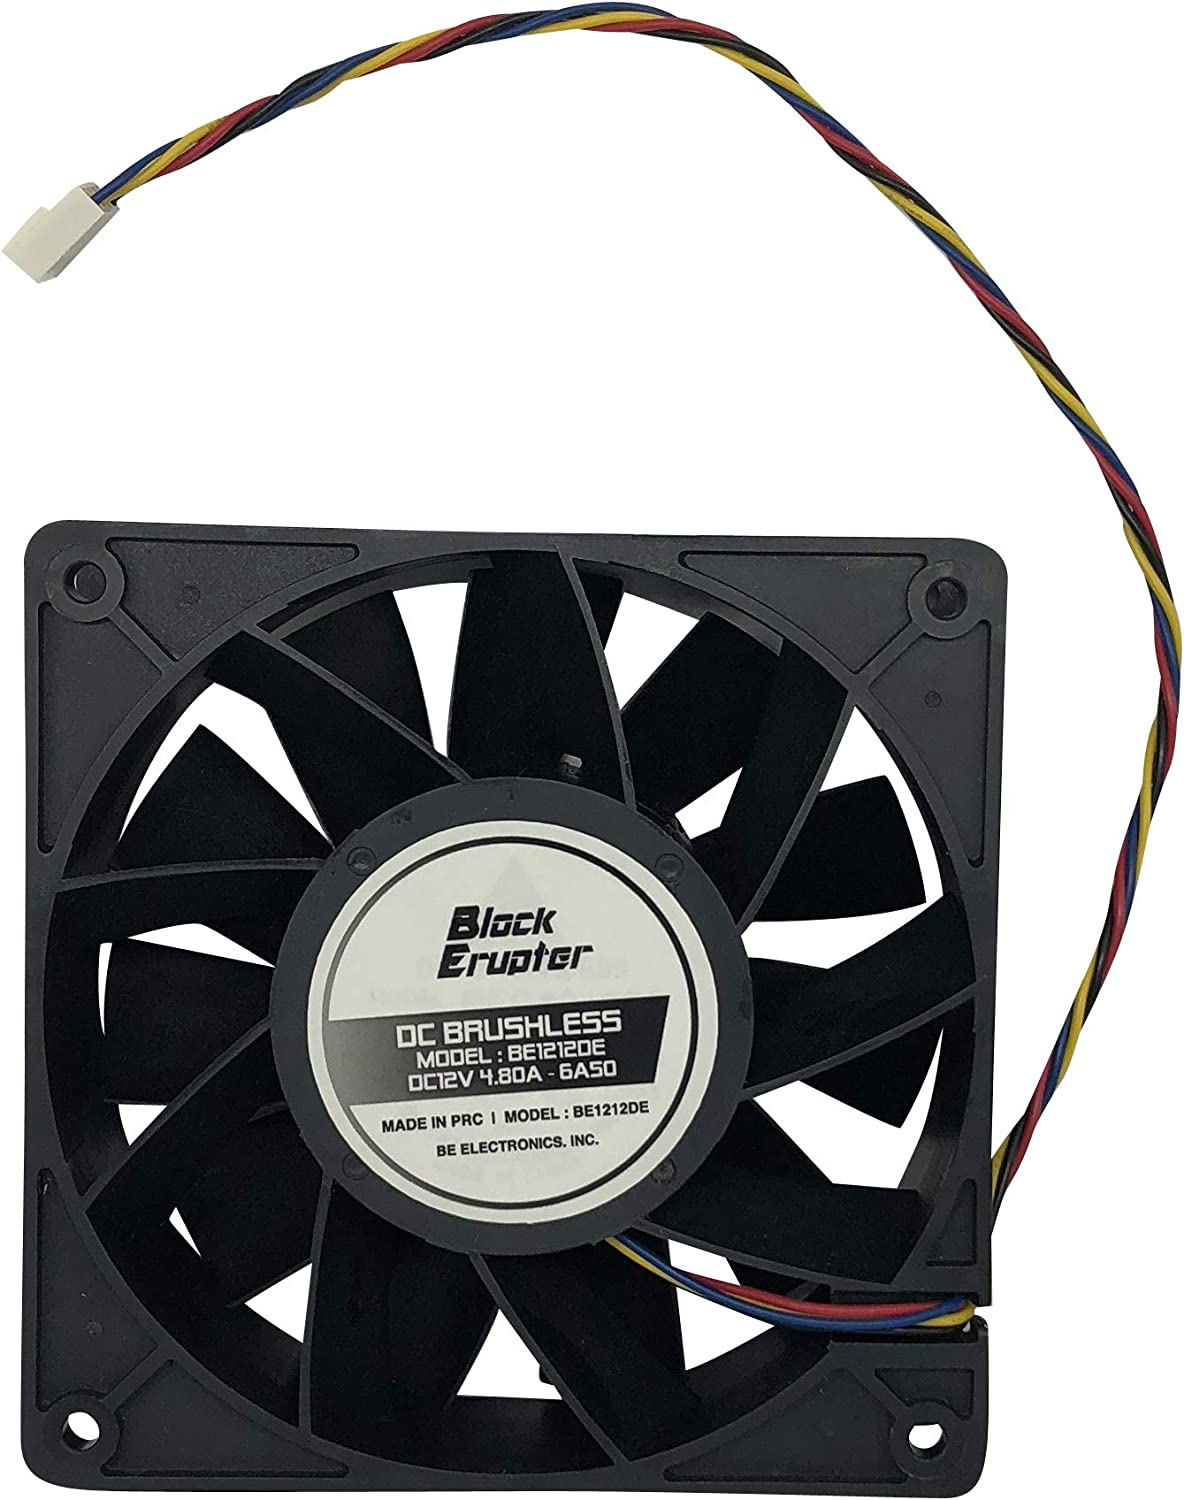 Replacement Bitmain Fan for Antminer S9, T9, Z9, D3, E3, X3, L3+